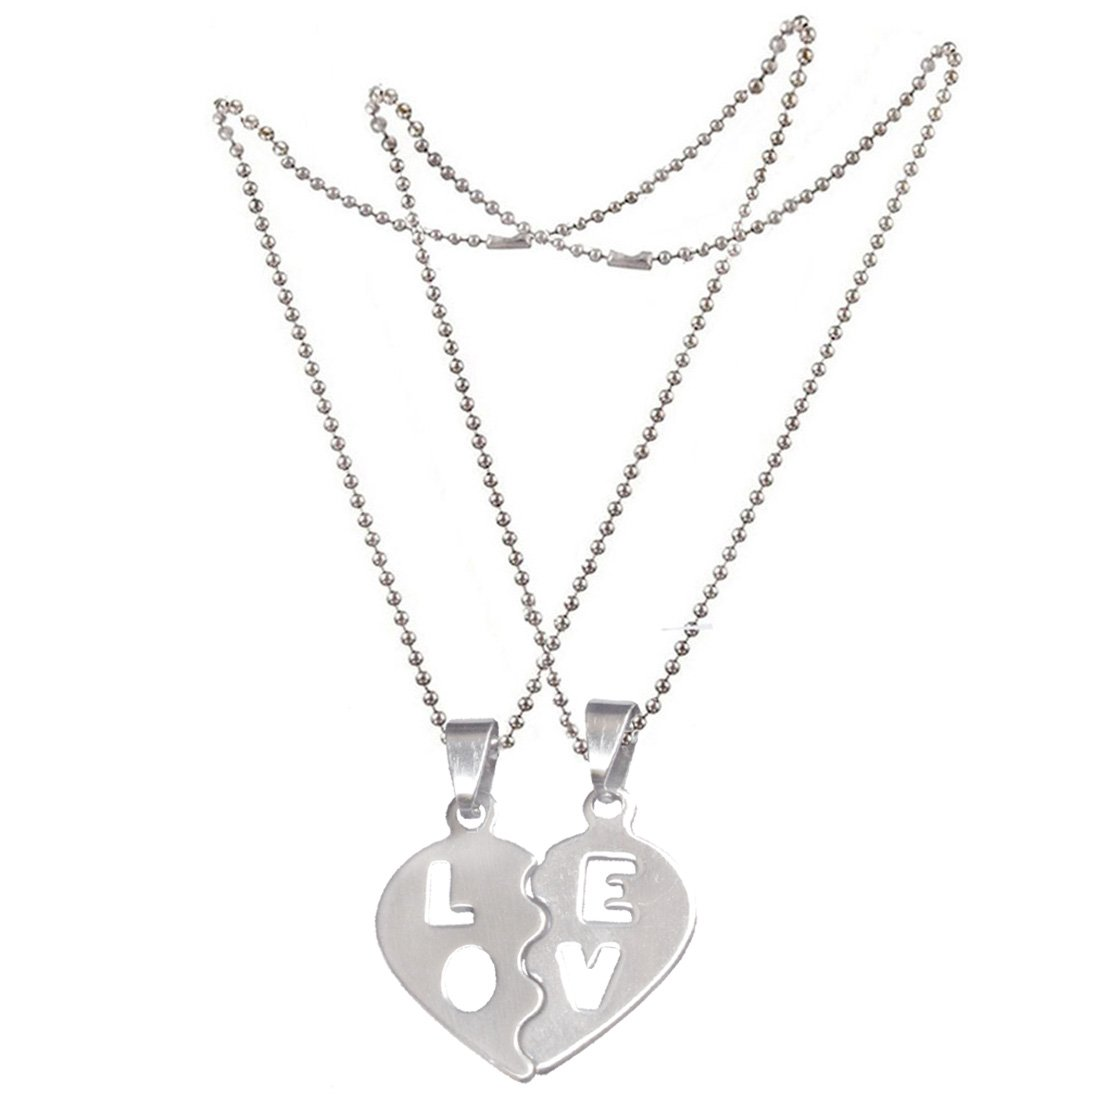 6dbf85ce38 Sullery Silver Stainless Steel Love Letters Couple Heart Lockets for  Unisex: Amazon.in: Jewellery